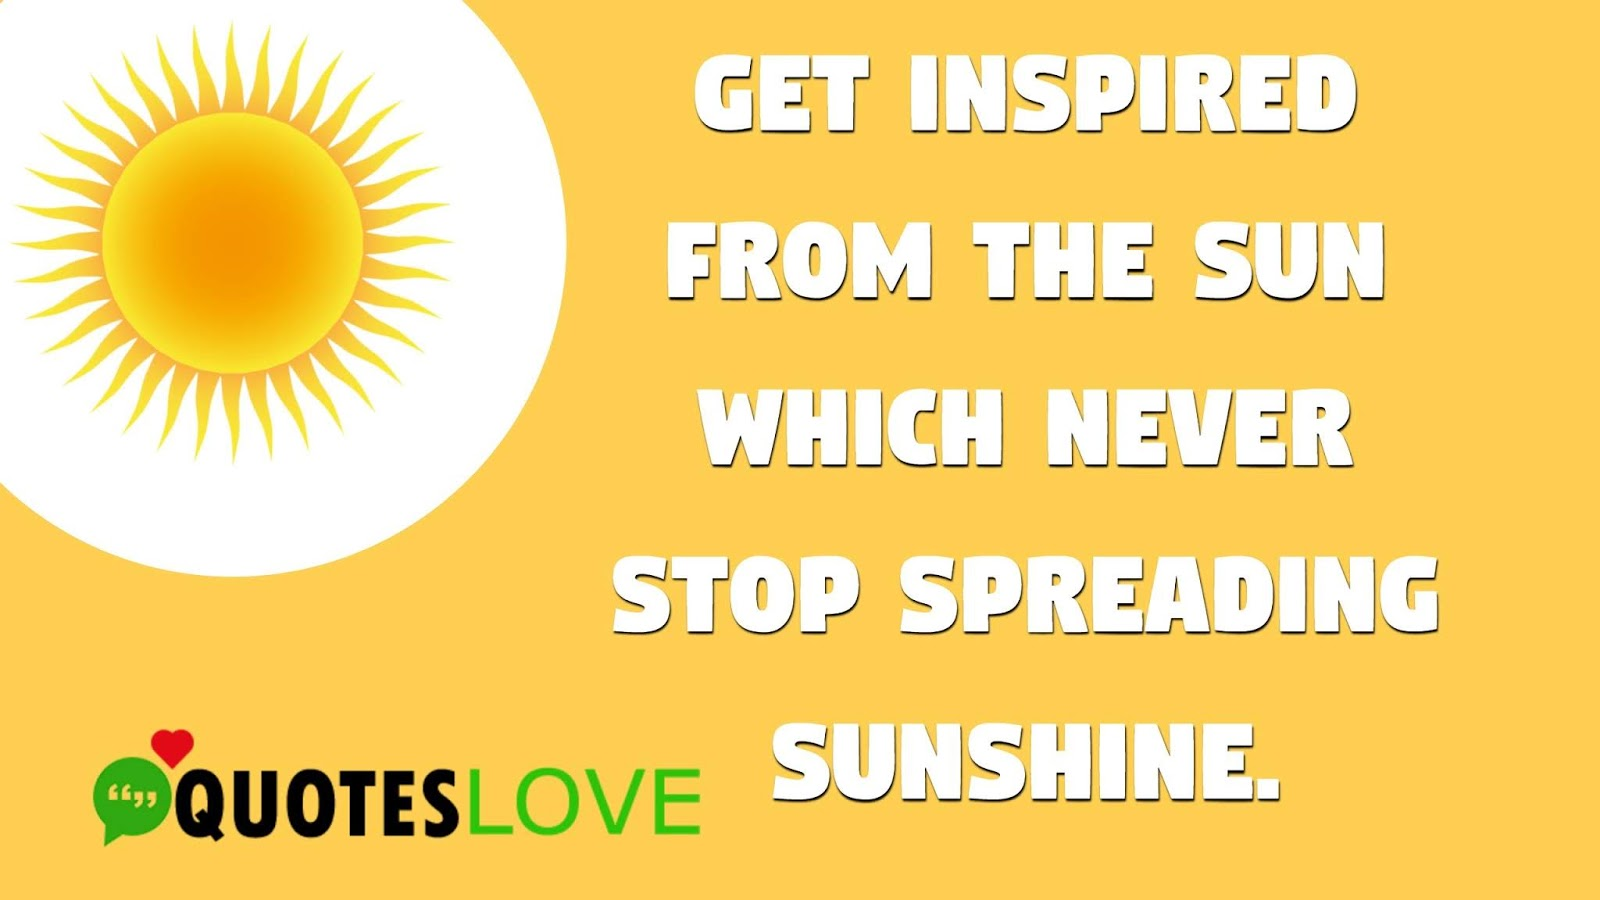 Get inspired from the sun which never stop spreading sunshine.